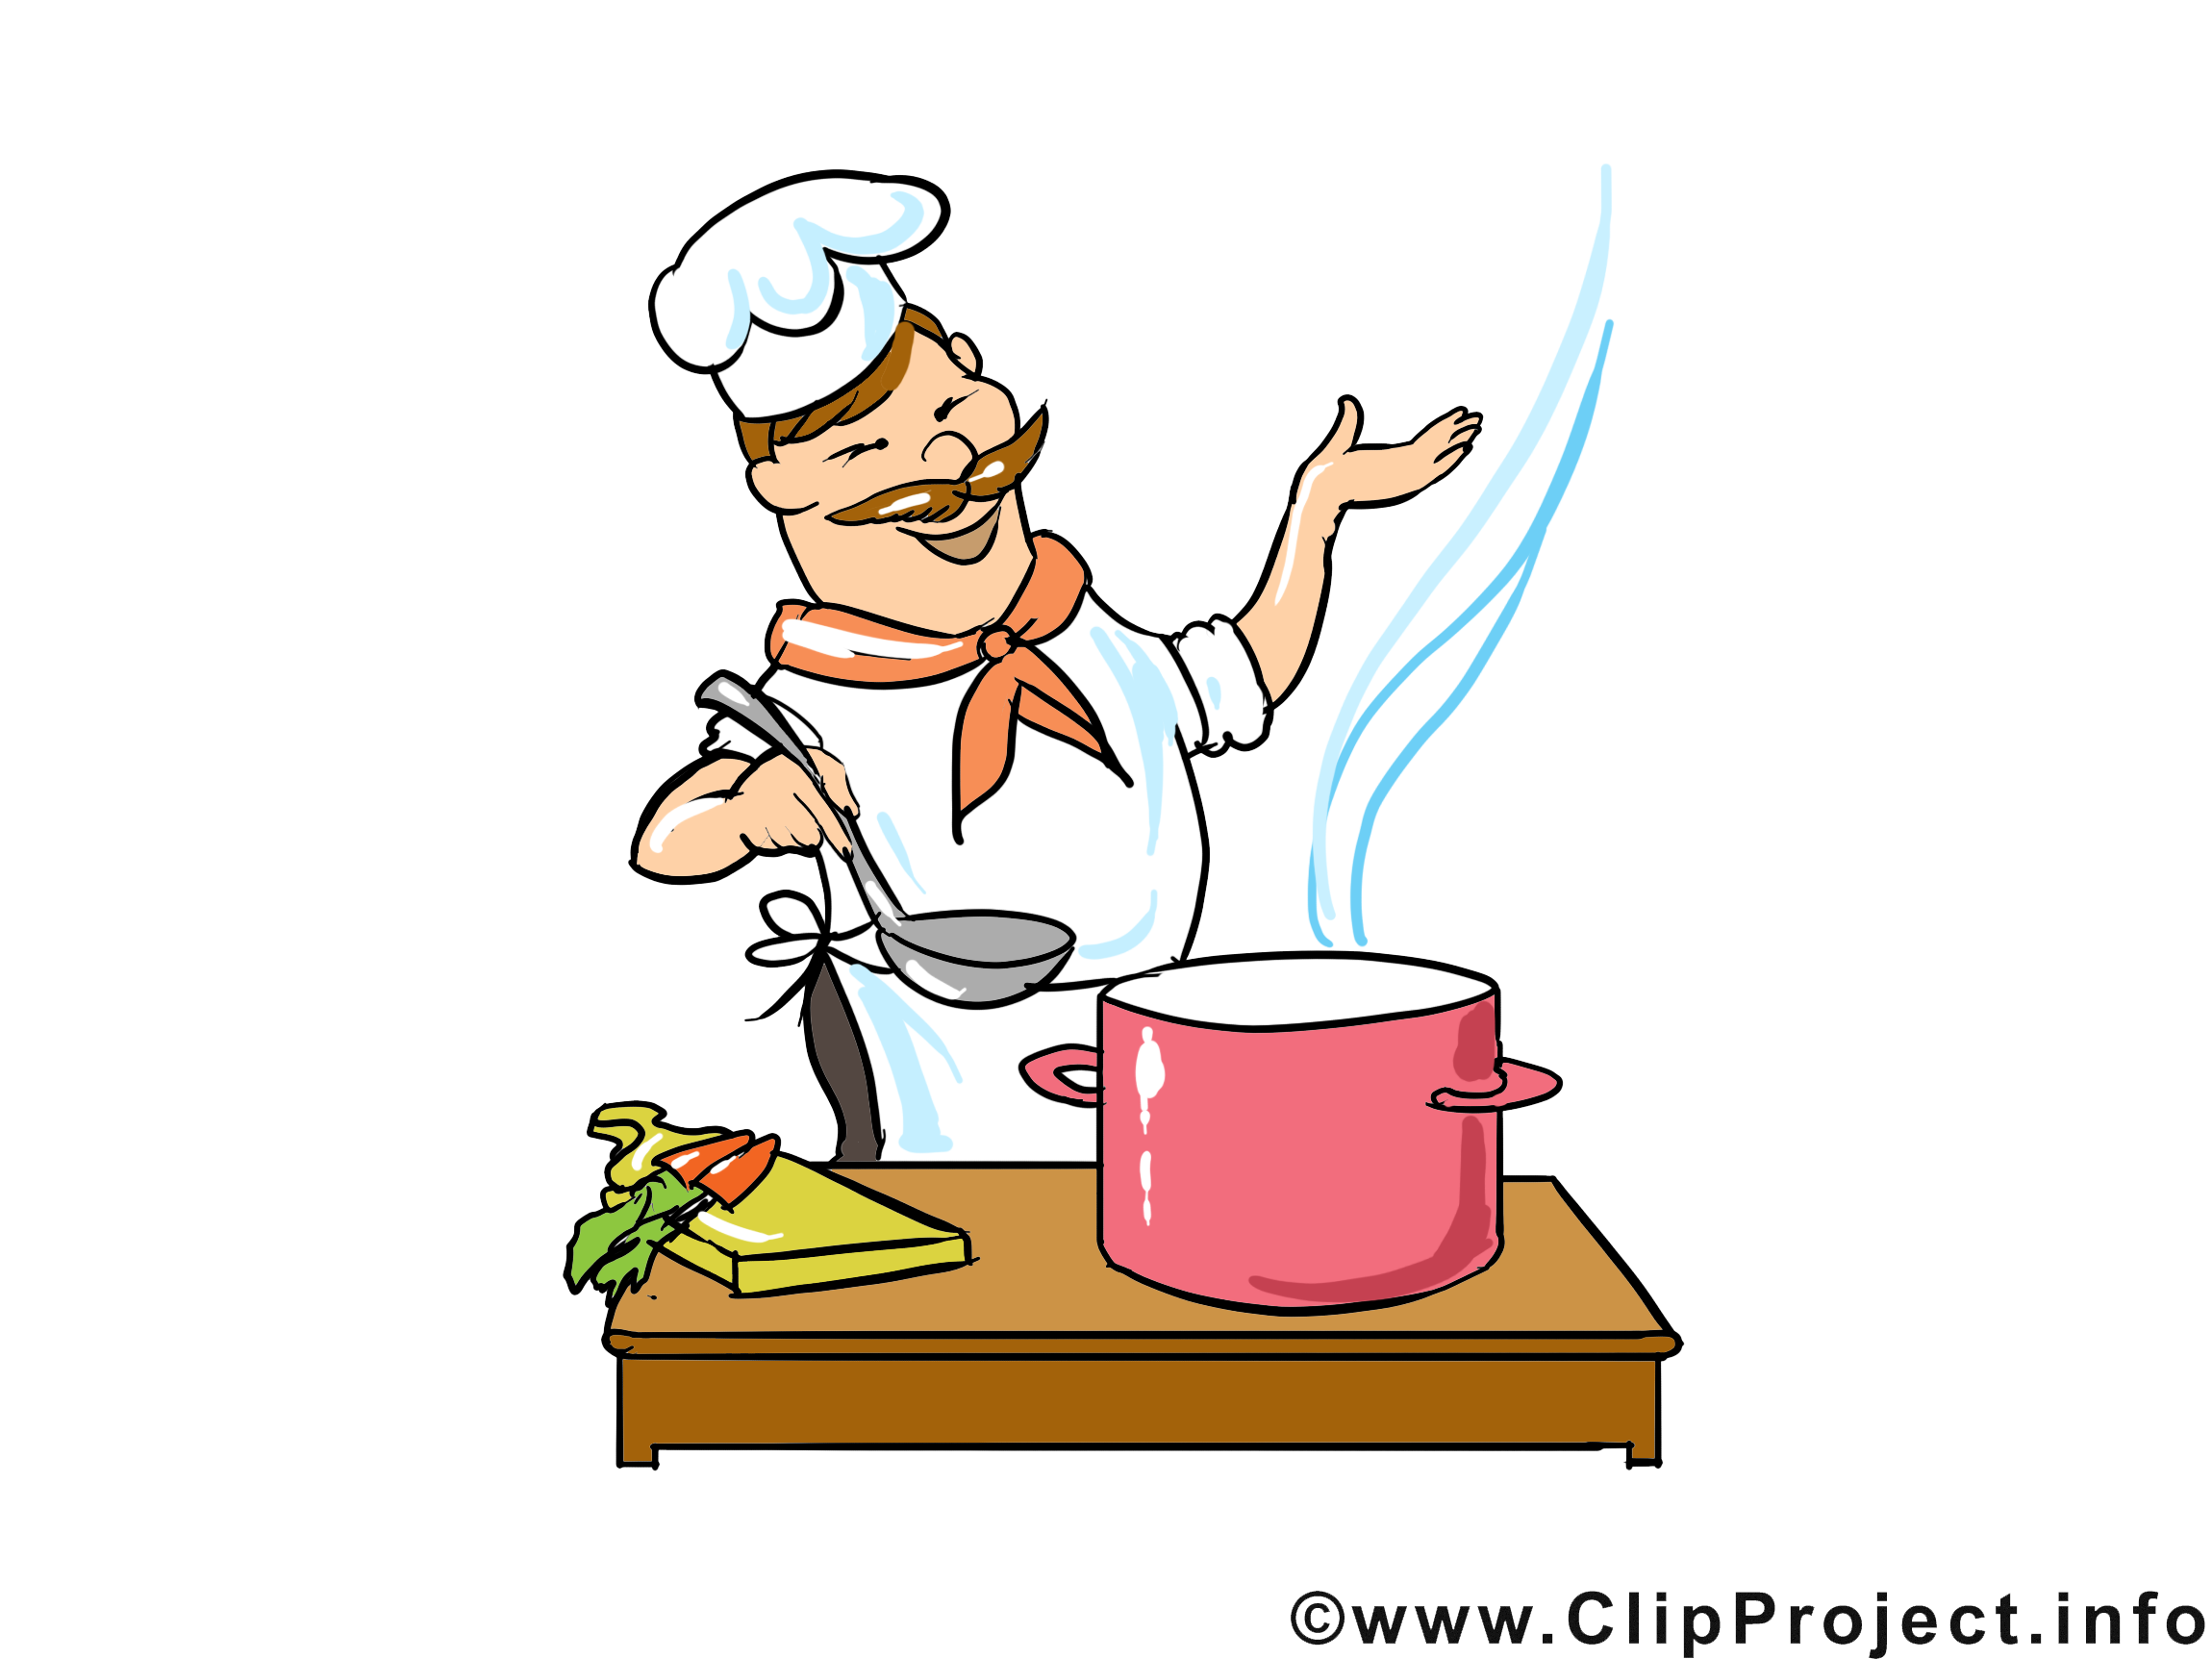 clipart gratuit cuisinier - photo #5